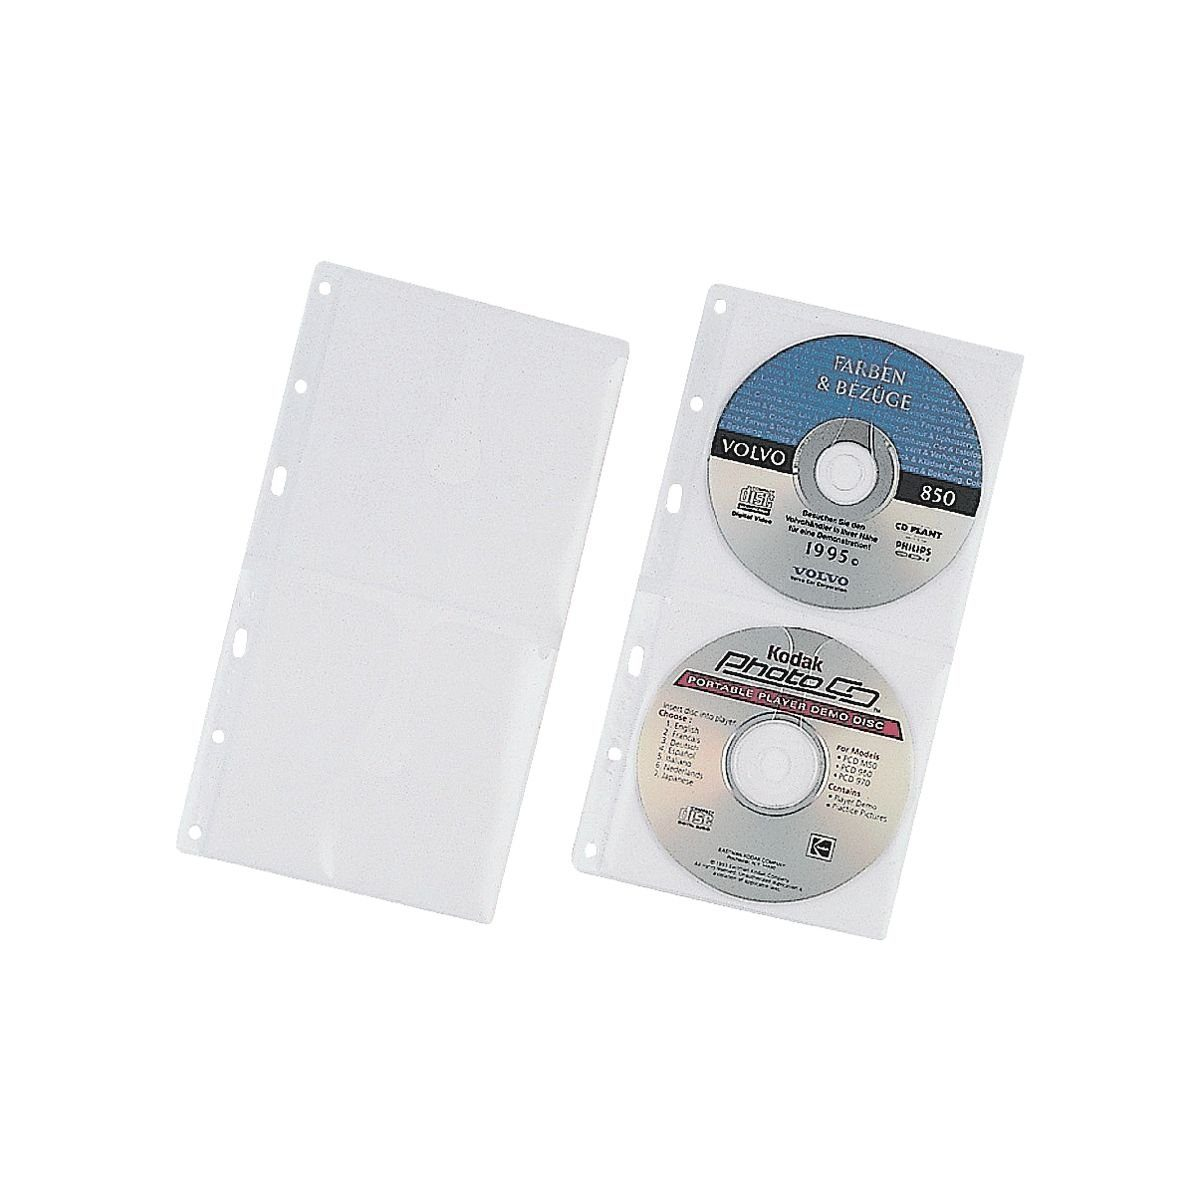 Durable CD/DVD/Blu-ray-Doppelhüllen